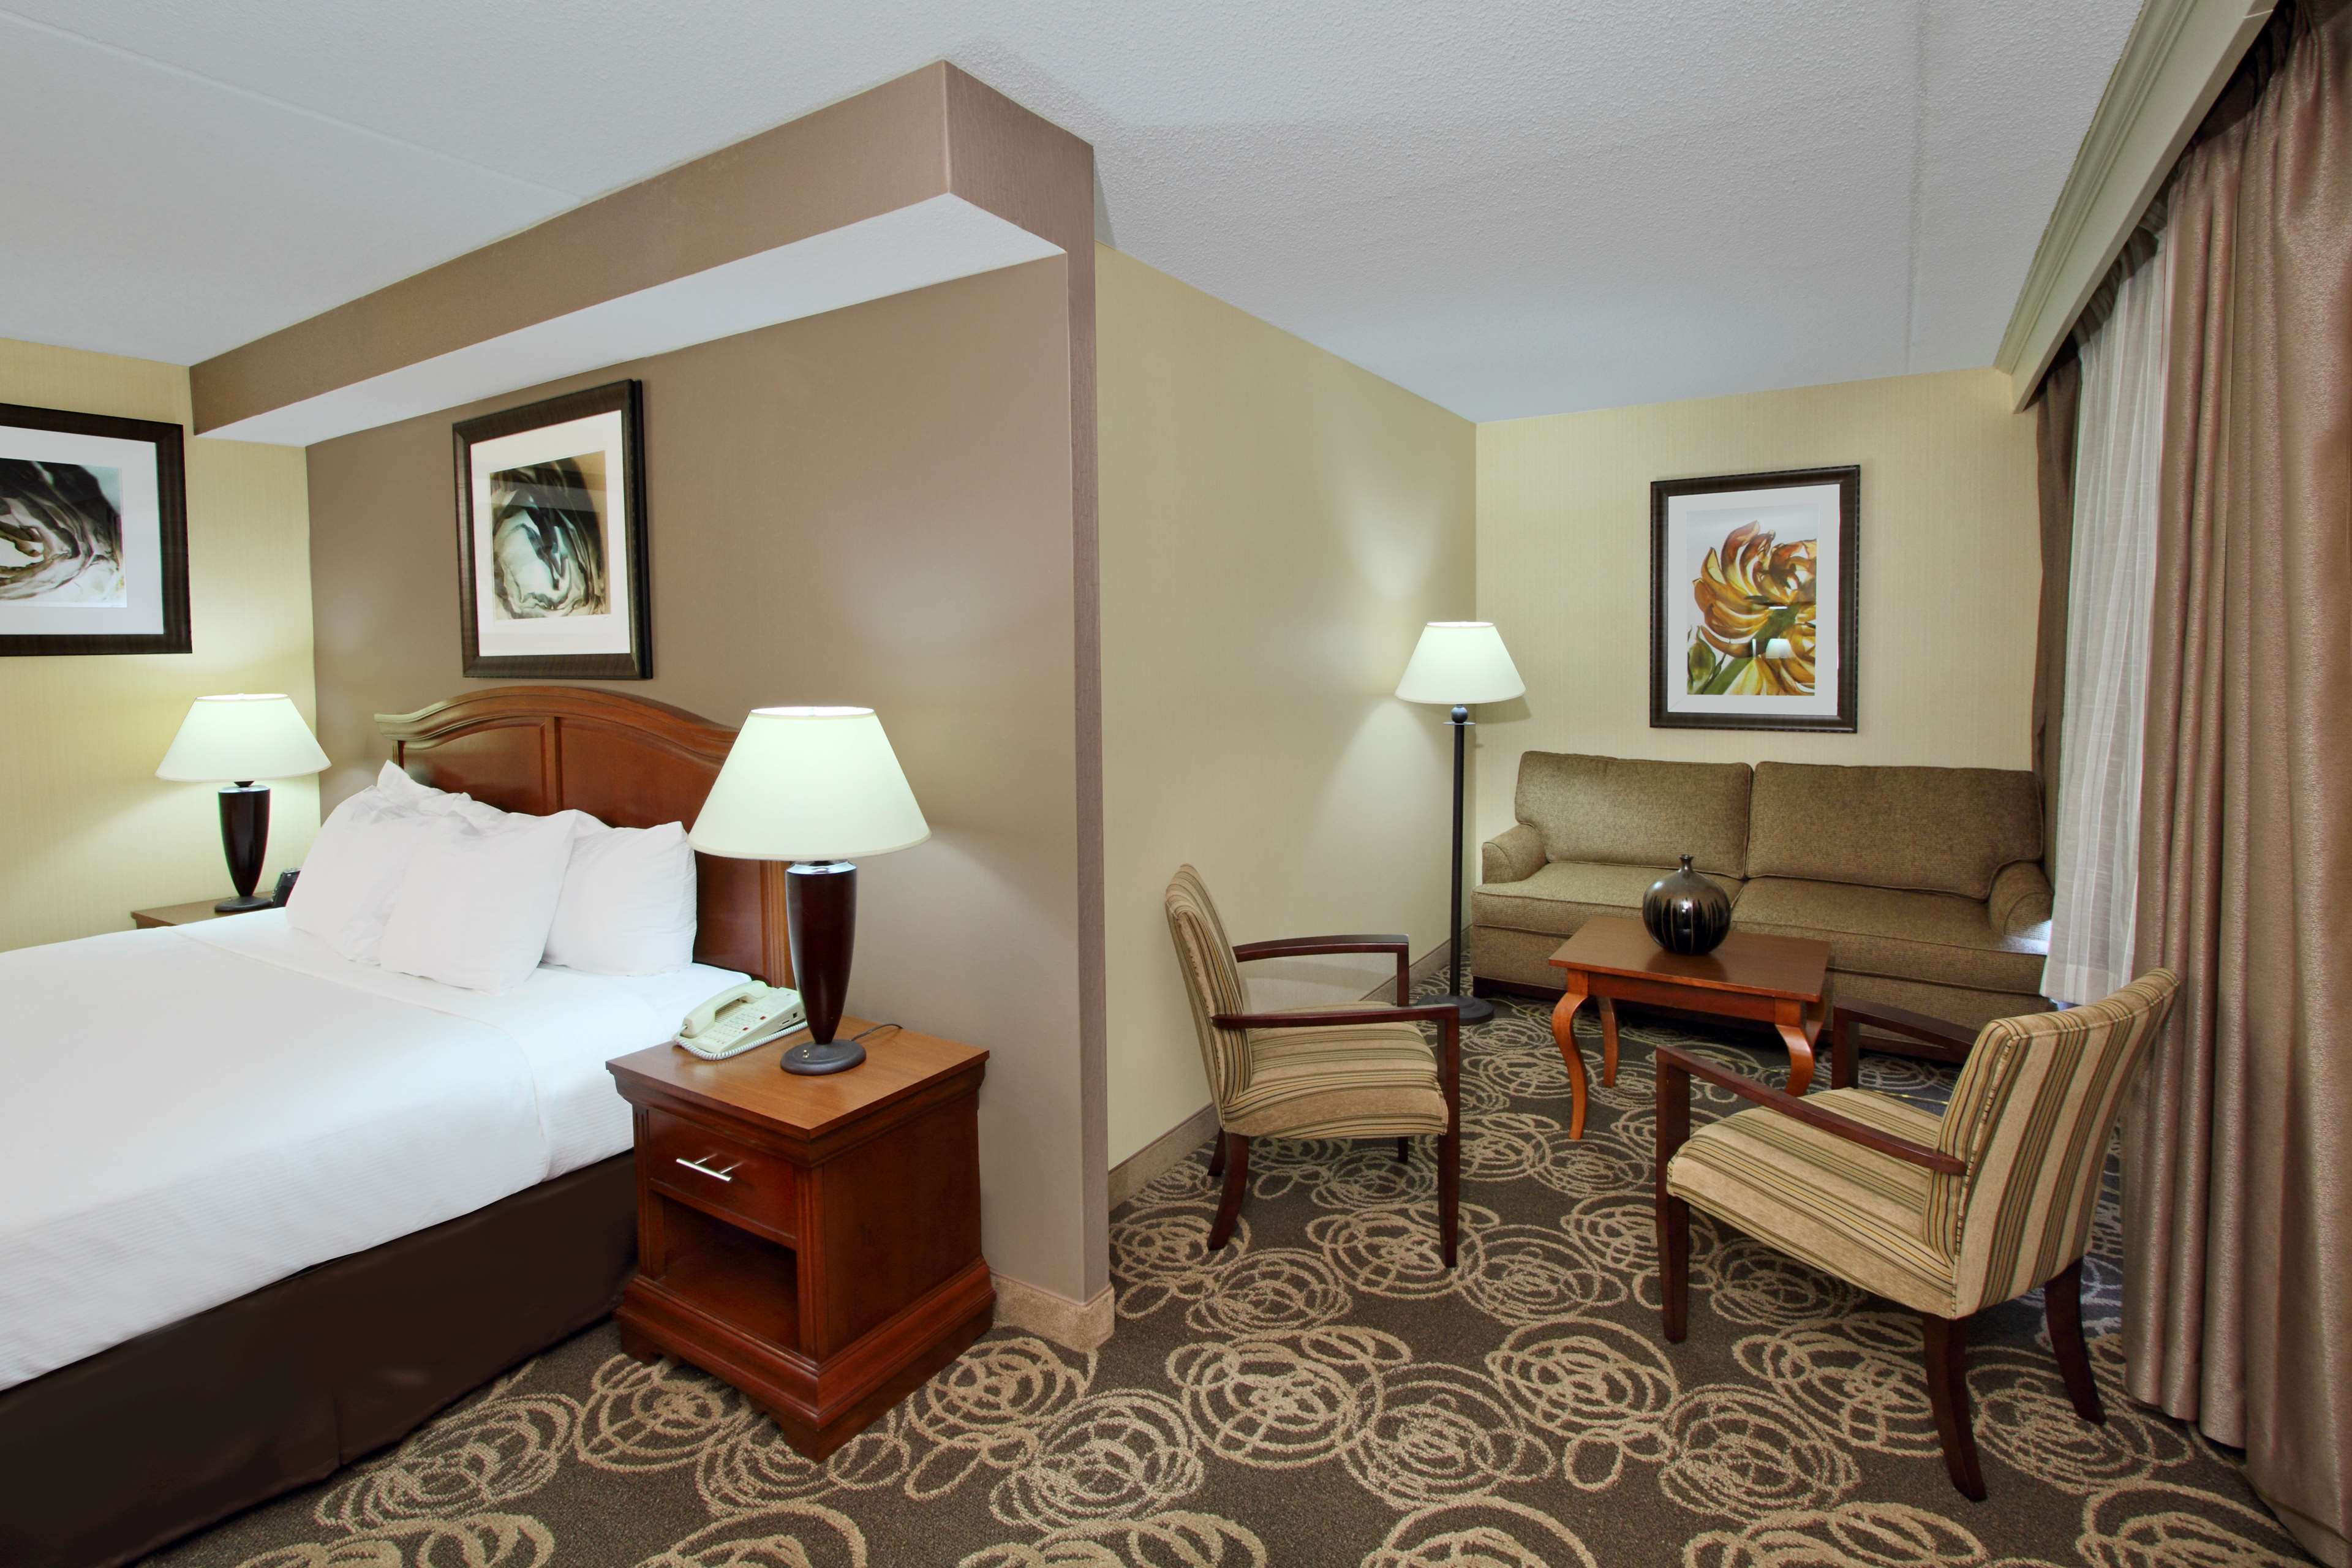 DoubleTree by Hilton Hotel Mahwah image 13